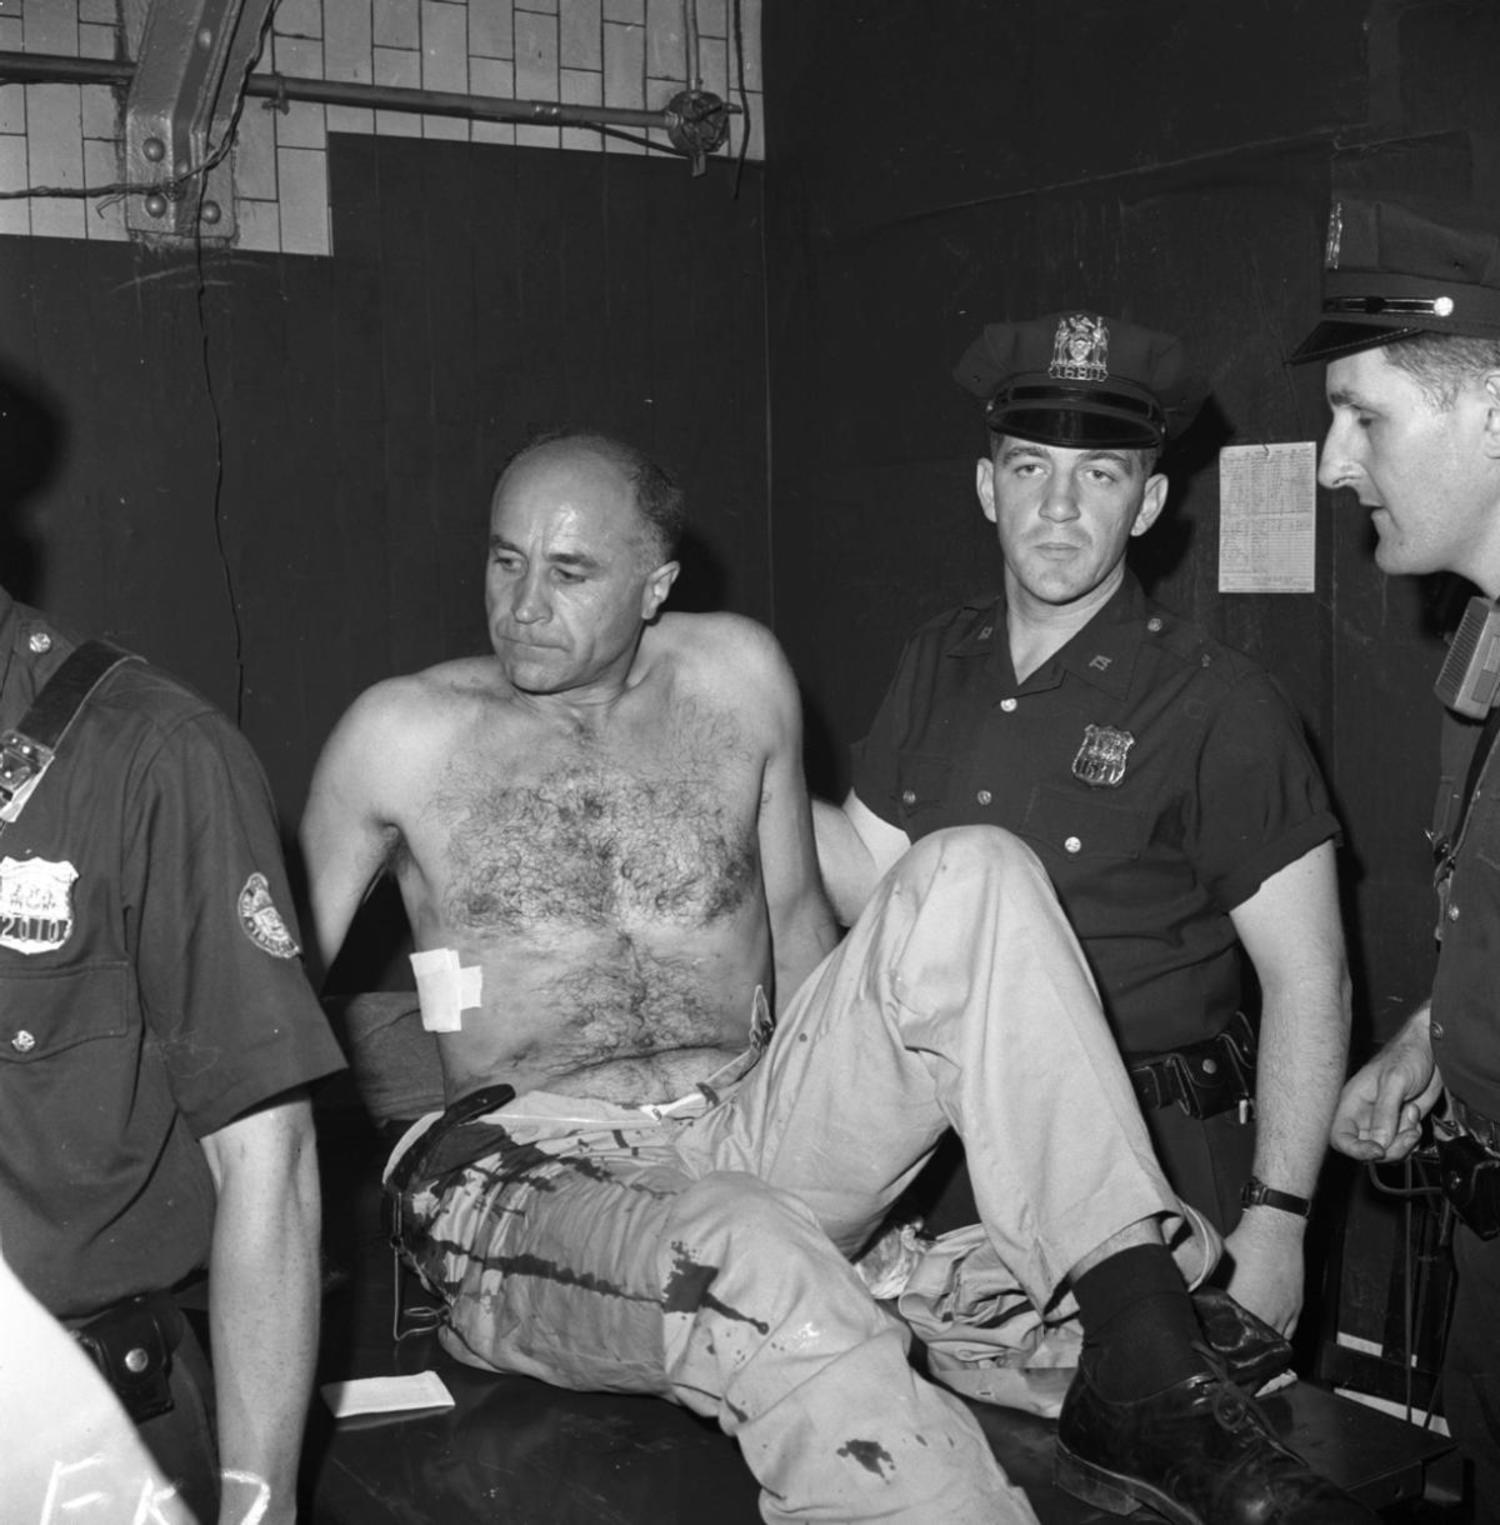 1960's: Navigating the underground tunnels constituting New York's subway system could be dangerous business. Here, a man is treated in Grand Central Station after being stabbed on the subway.